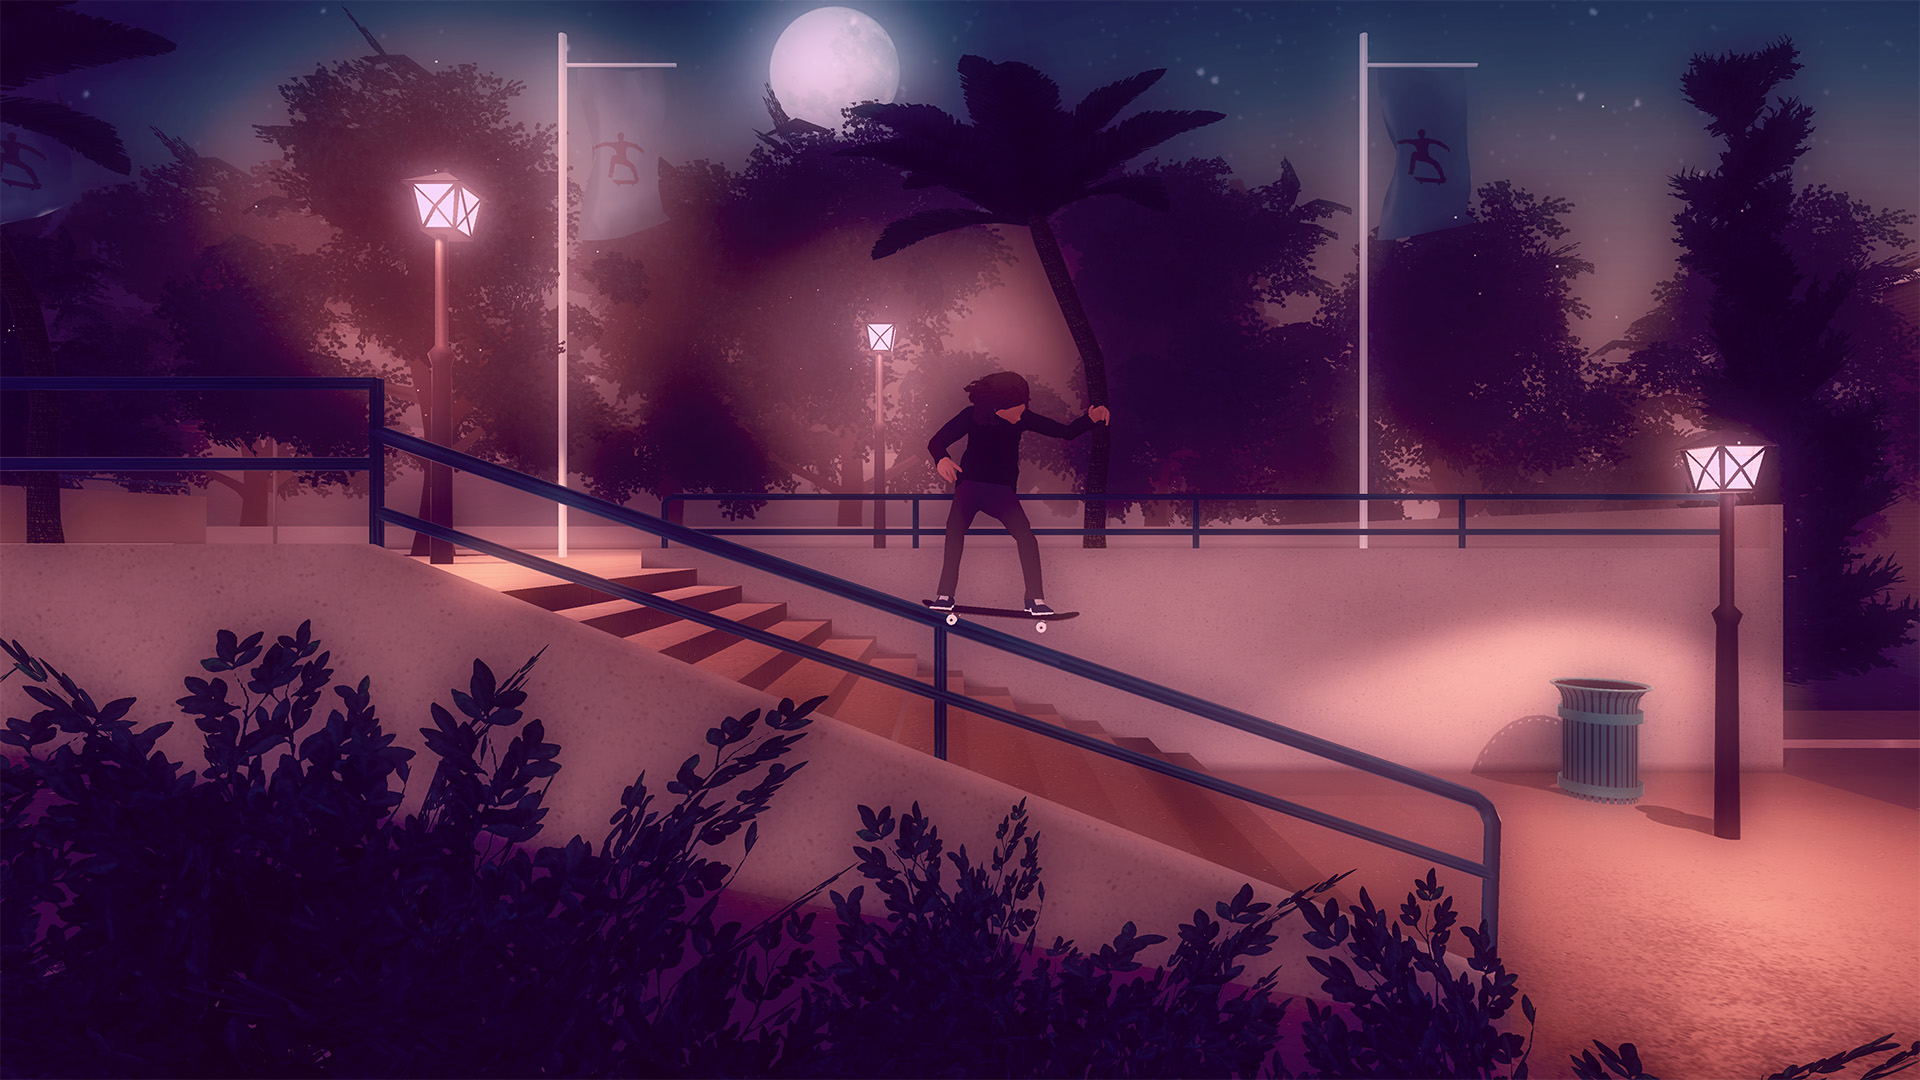 Alto's Adventure developer Snowman is co-developing Skate City